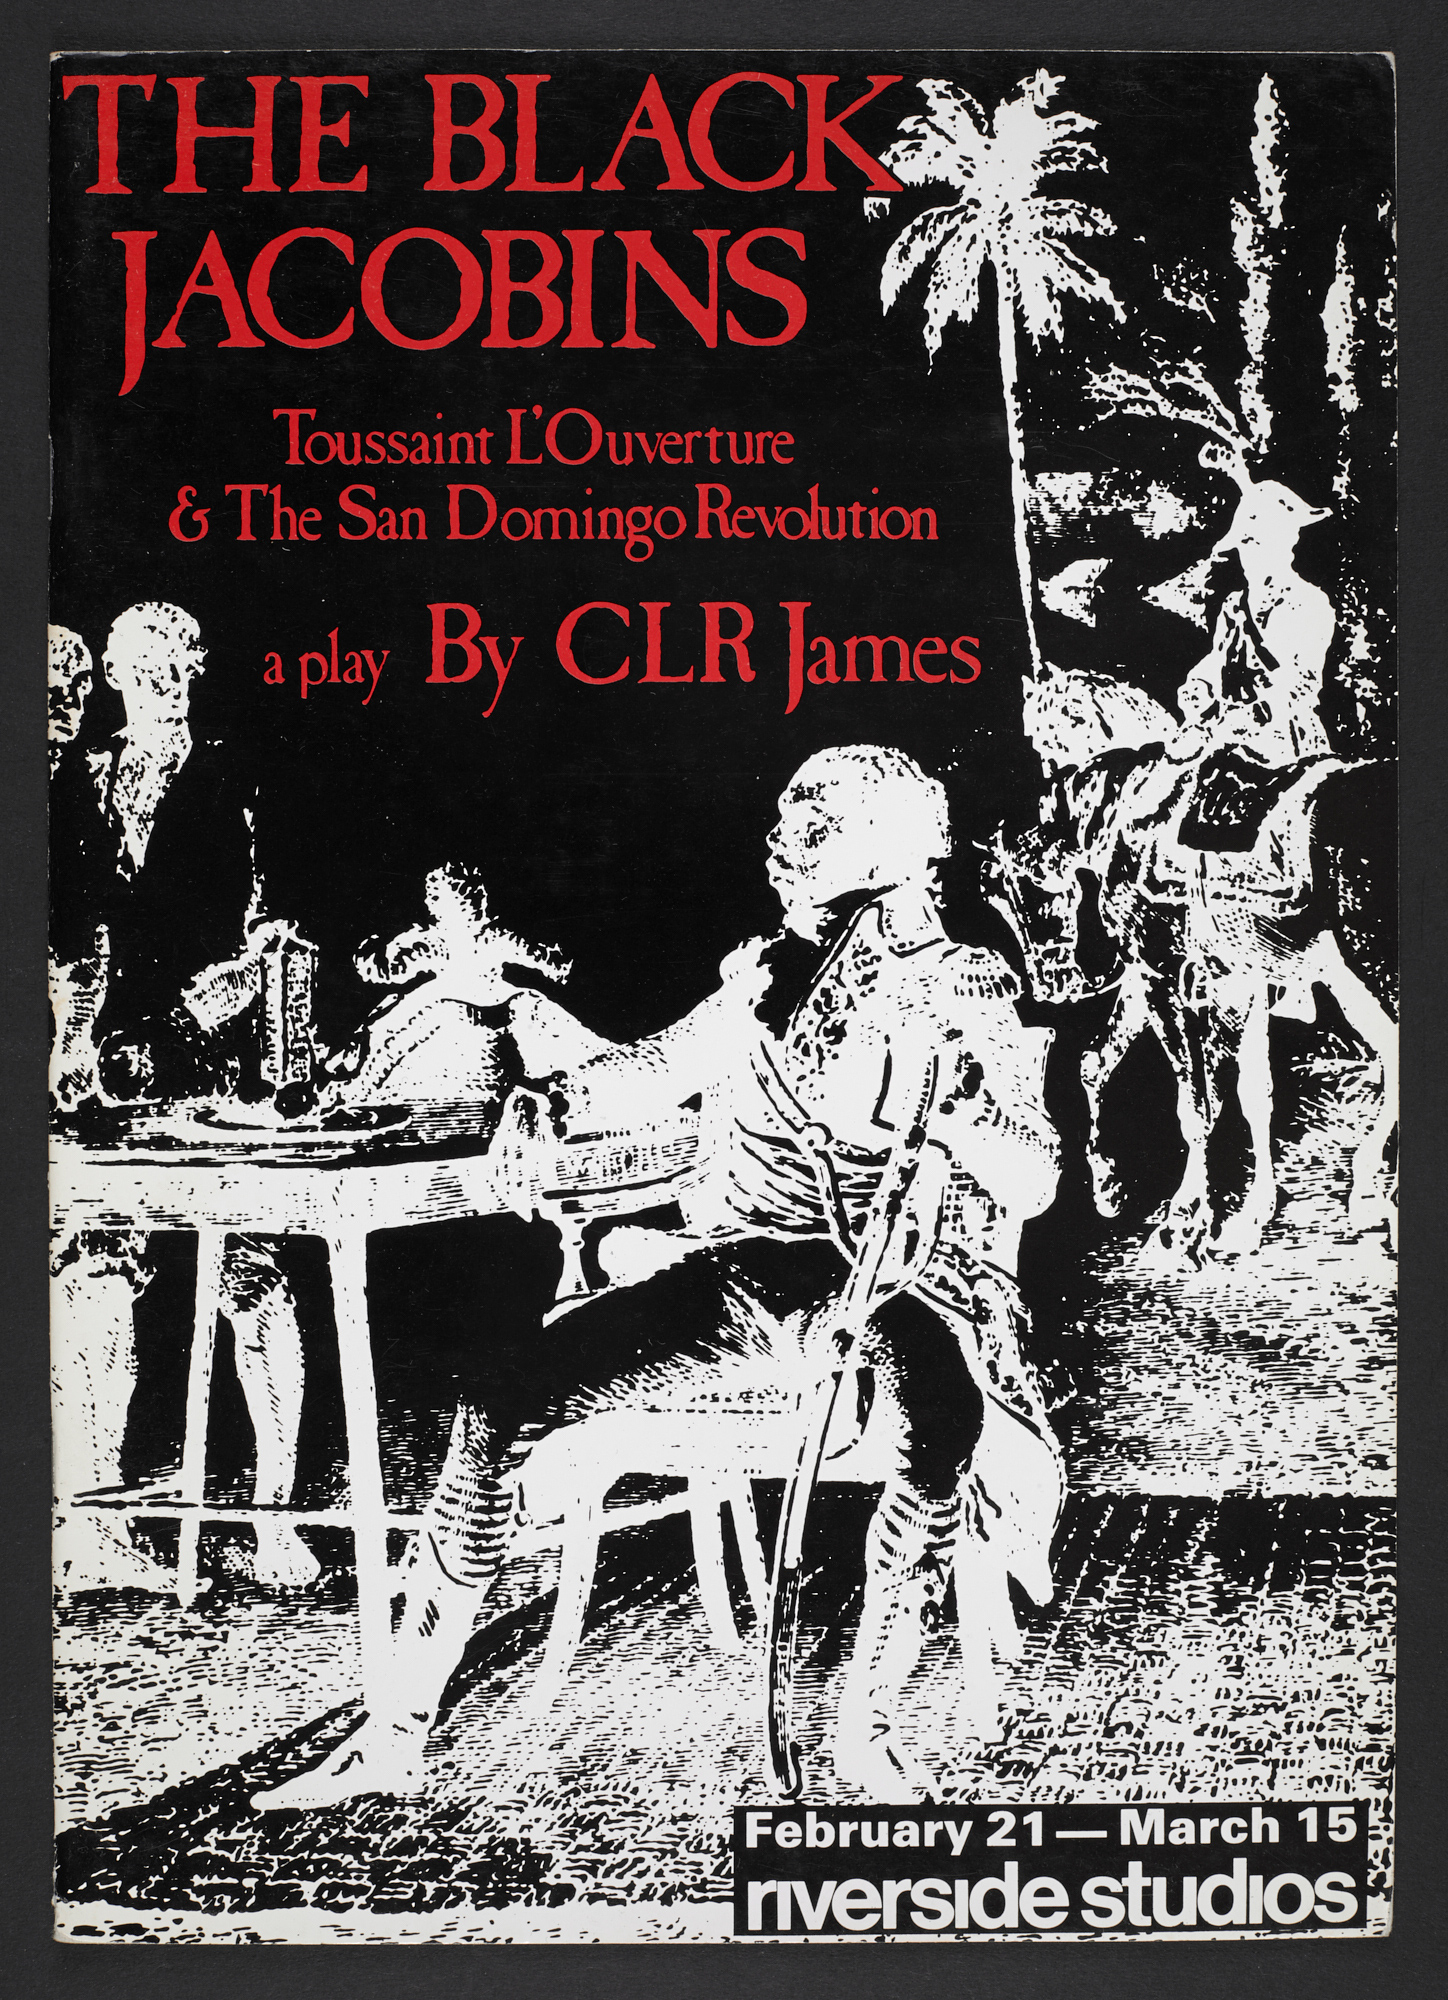 Programme for The Black Jacobins by C L R James, 1986